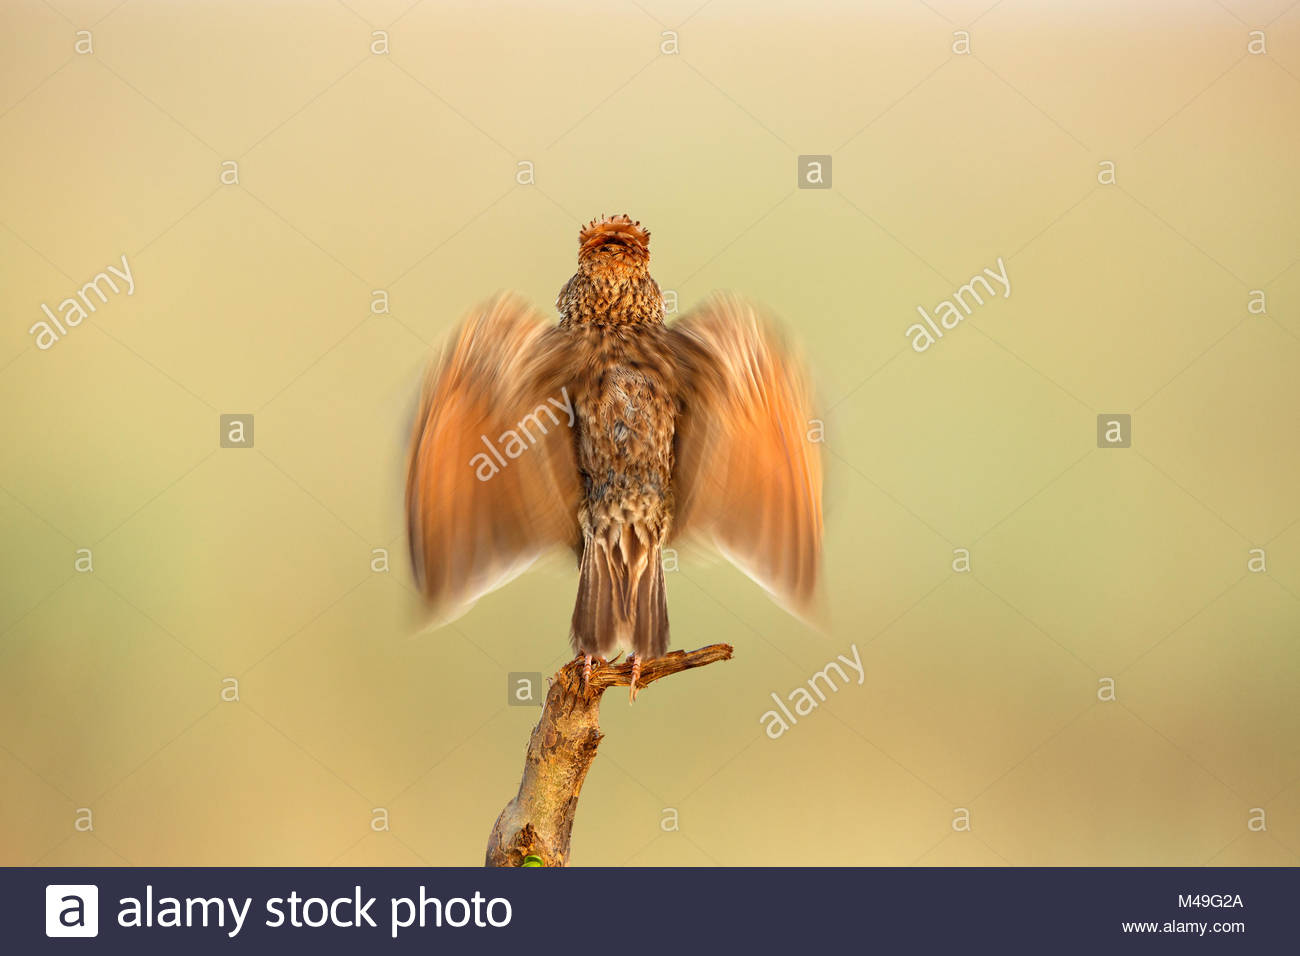 Rufous naped Lark (Mirafra africana) male courtship display, Rietvlei Nature Reserve, Gauteng Province, South Africa, Stock Photo